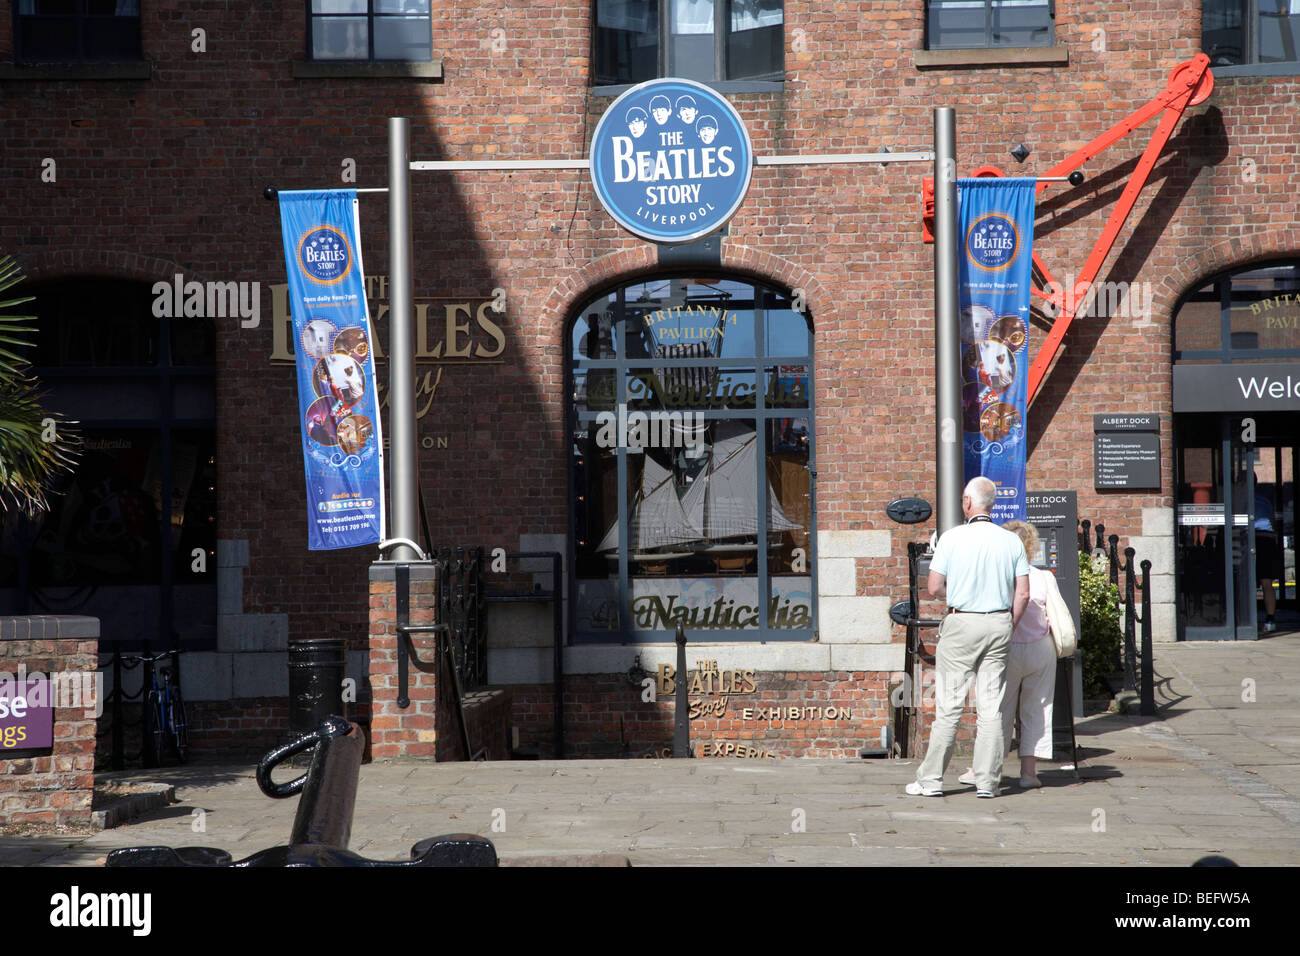 tourists at the beatles story exhibition at the albert dock liverpool merseyside england uk - Stock Image